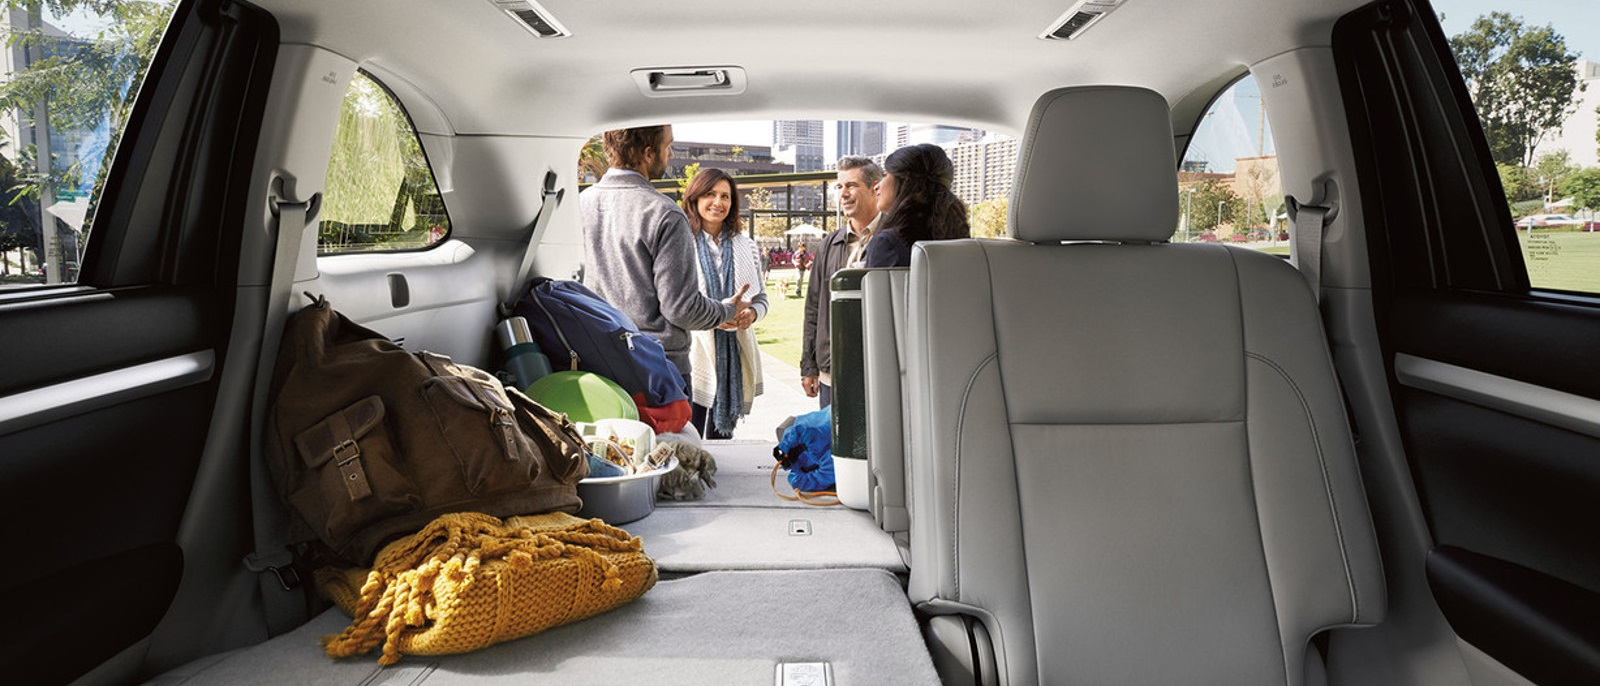 Toyota Highlander Owners Manual: Child restraint systems